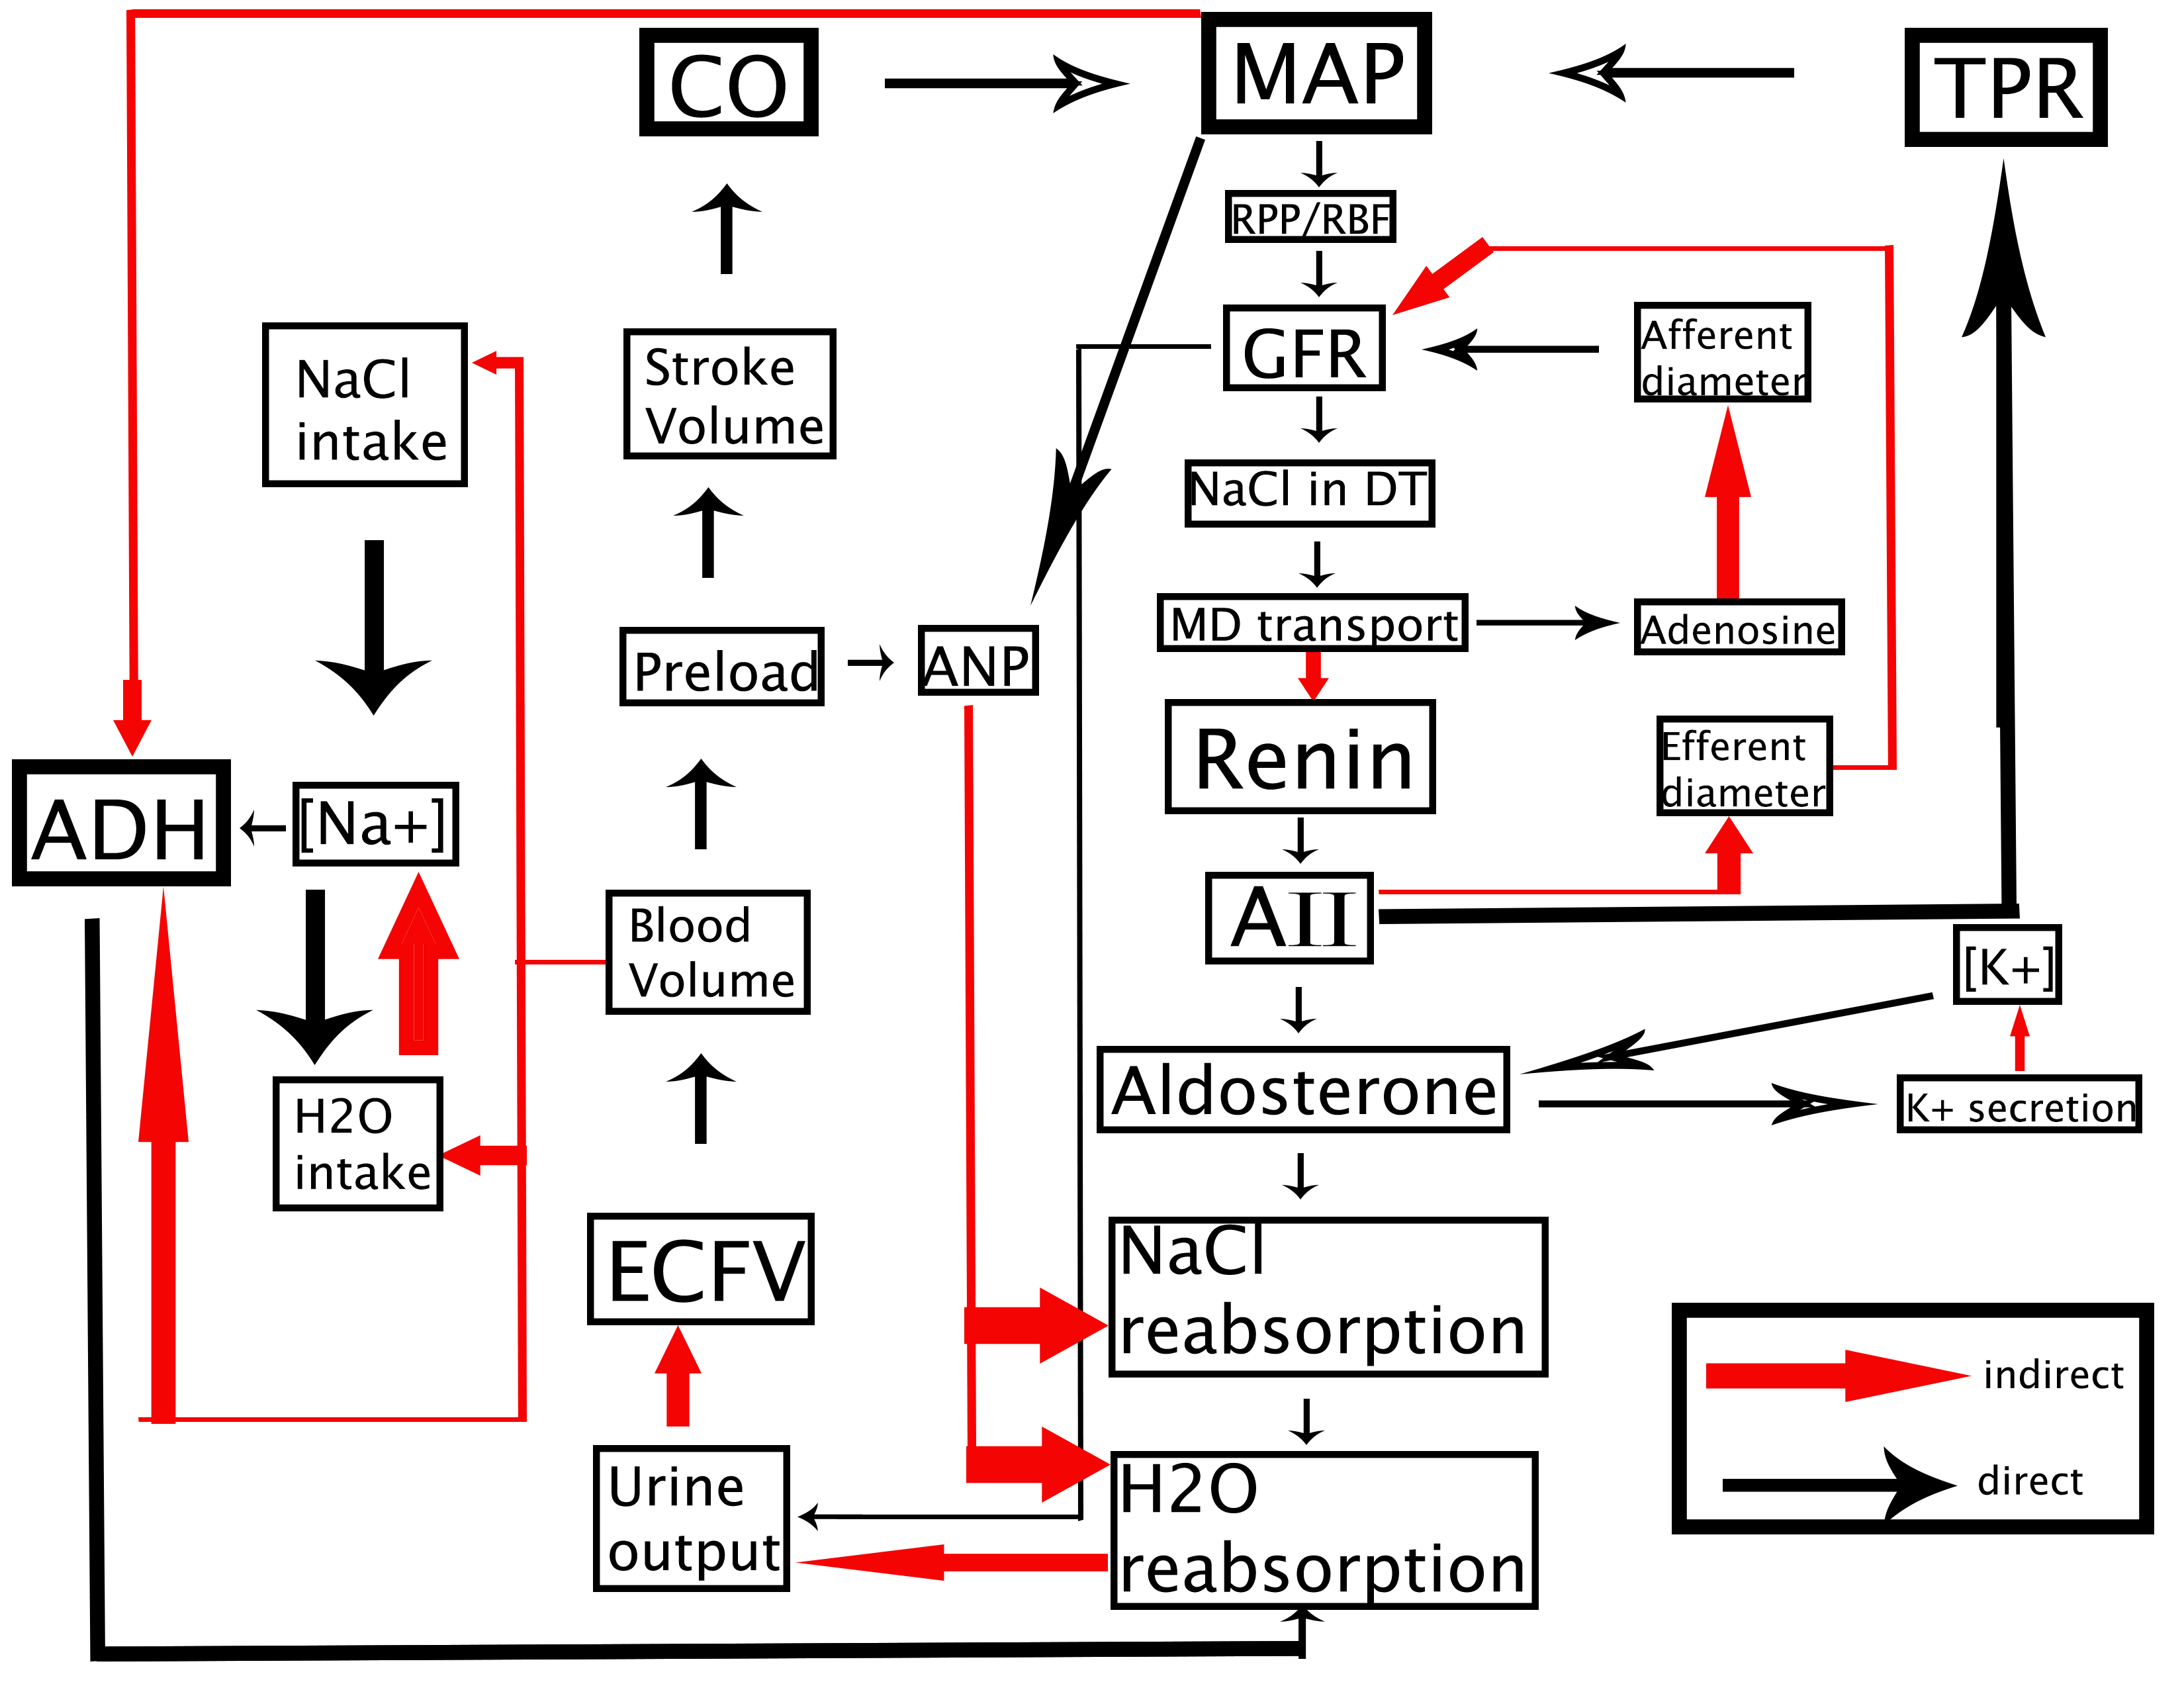 Cardio-Renal physiology chart